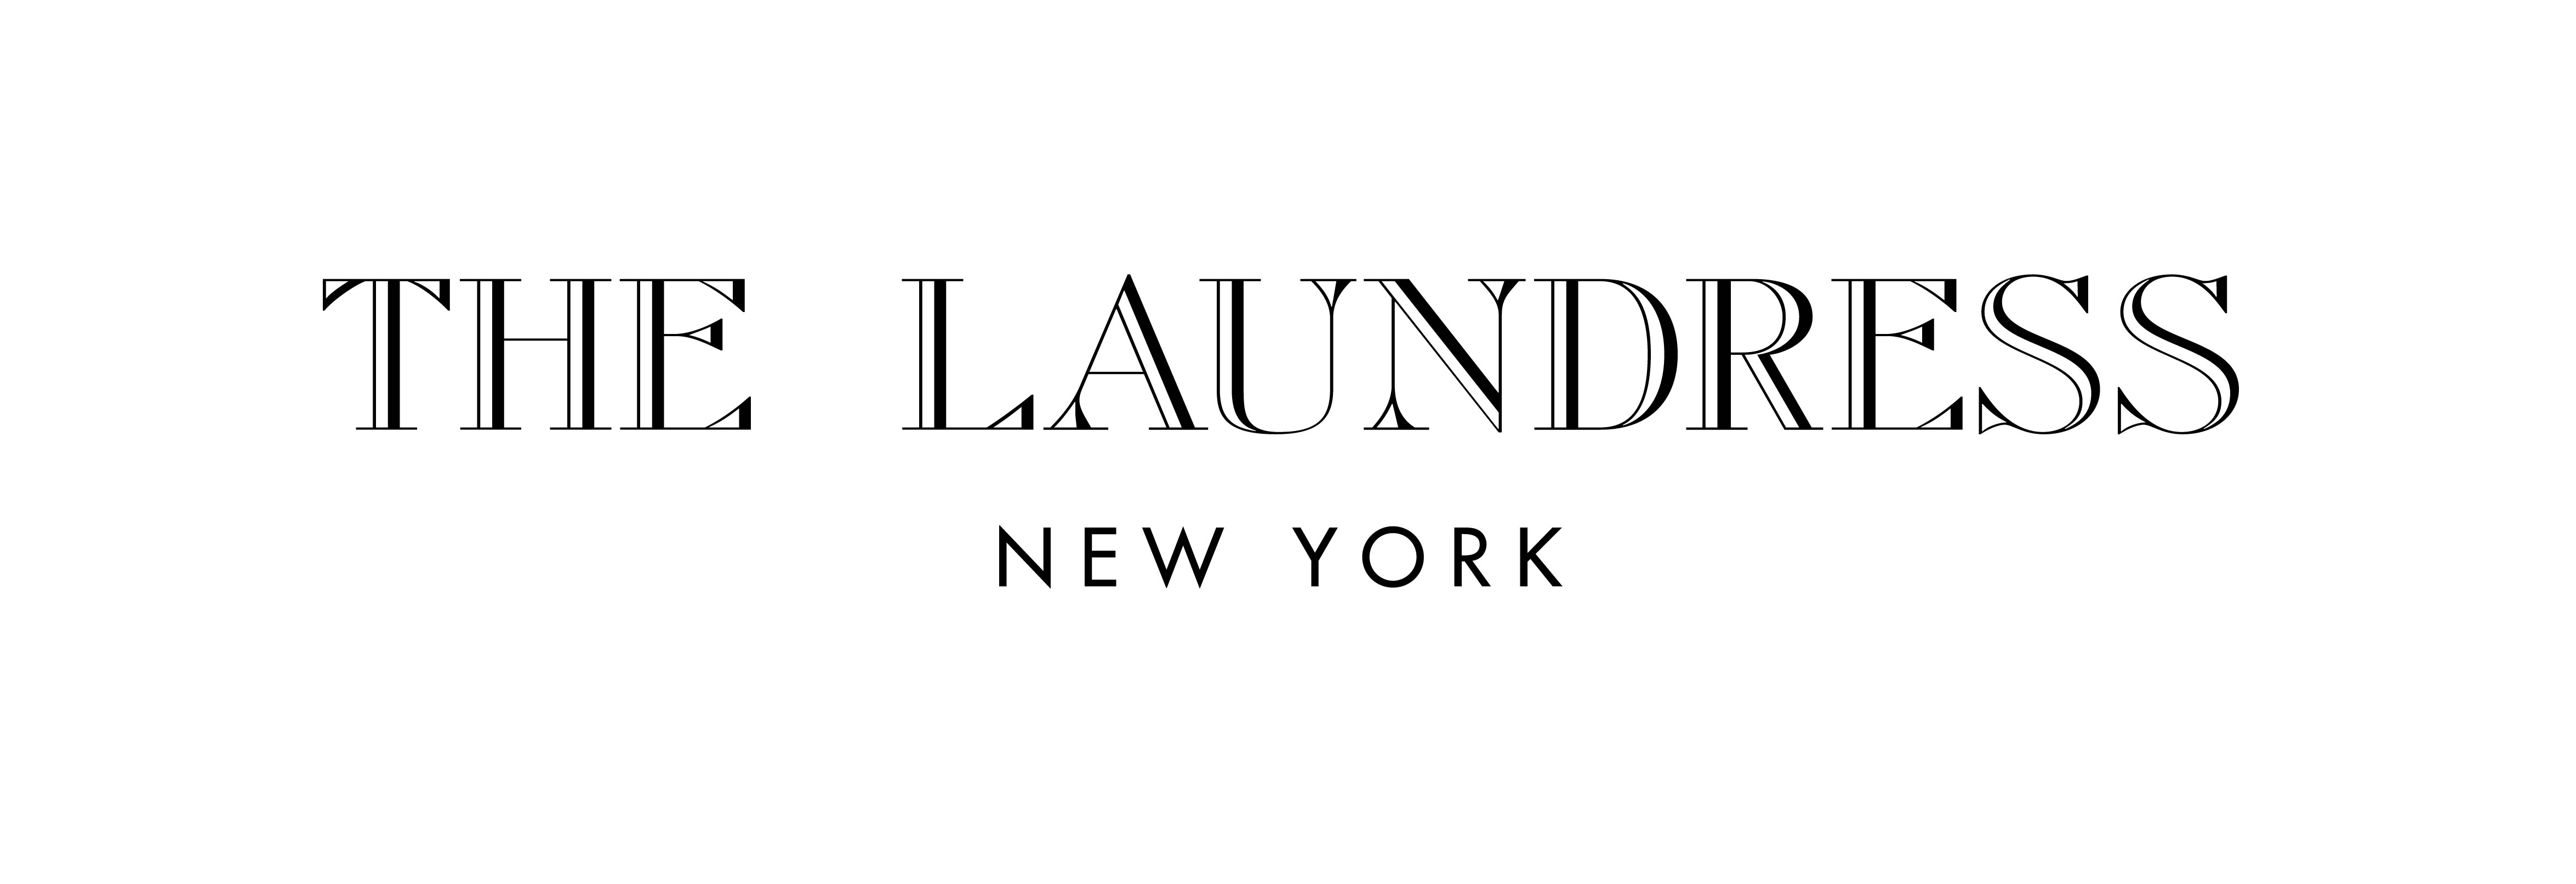 thelaundress_newlogo